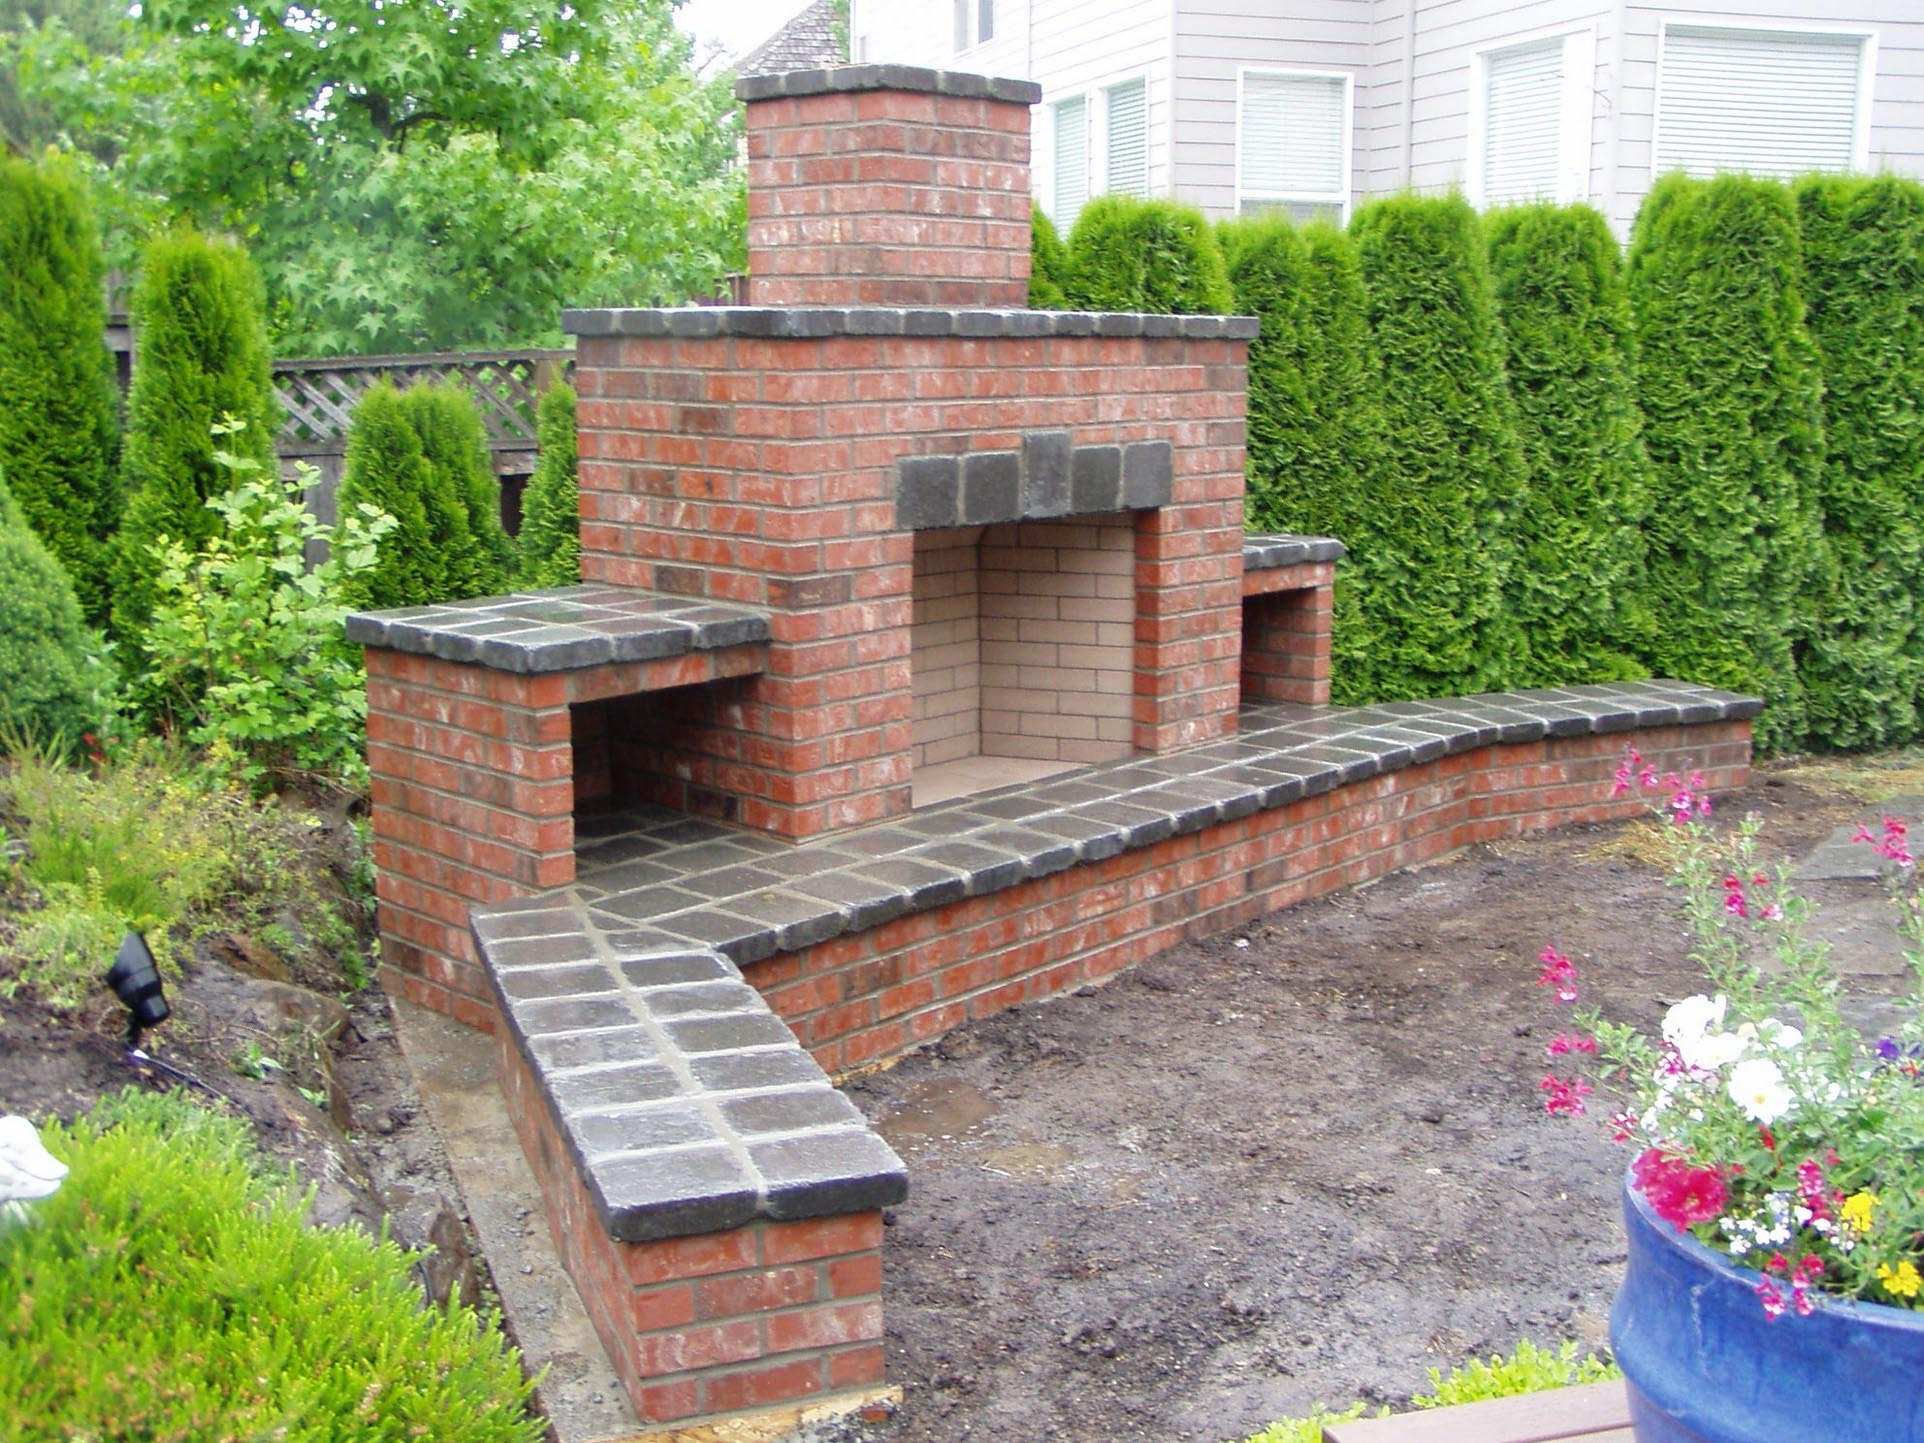 Red brick outdoor fireplace fireplace designs for Outdoor fireplace designs plans